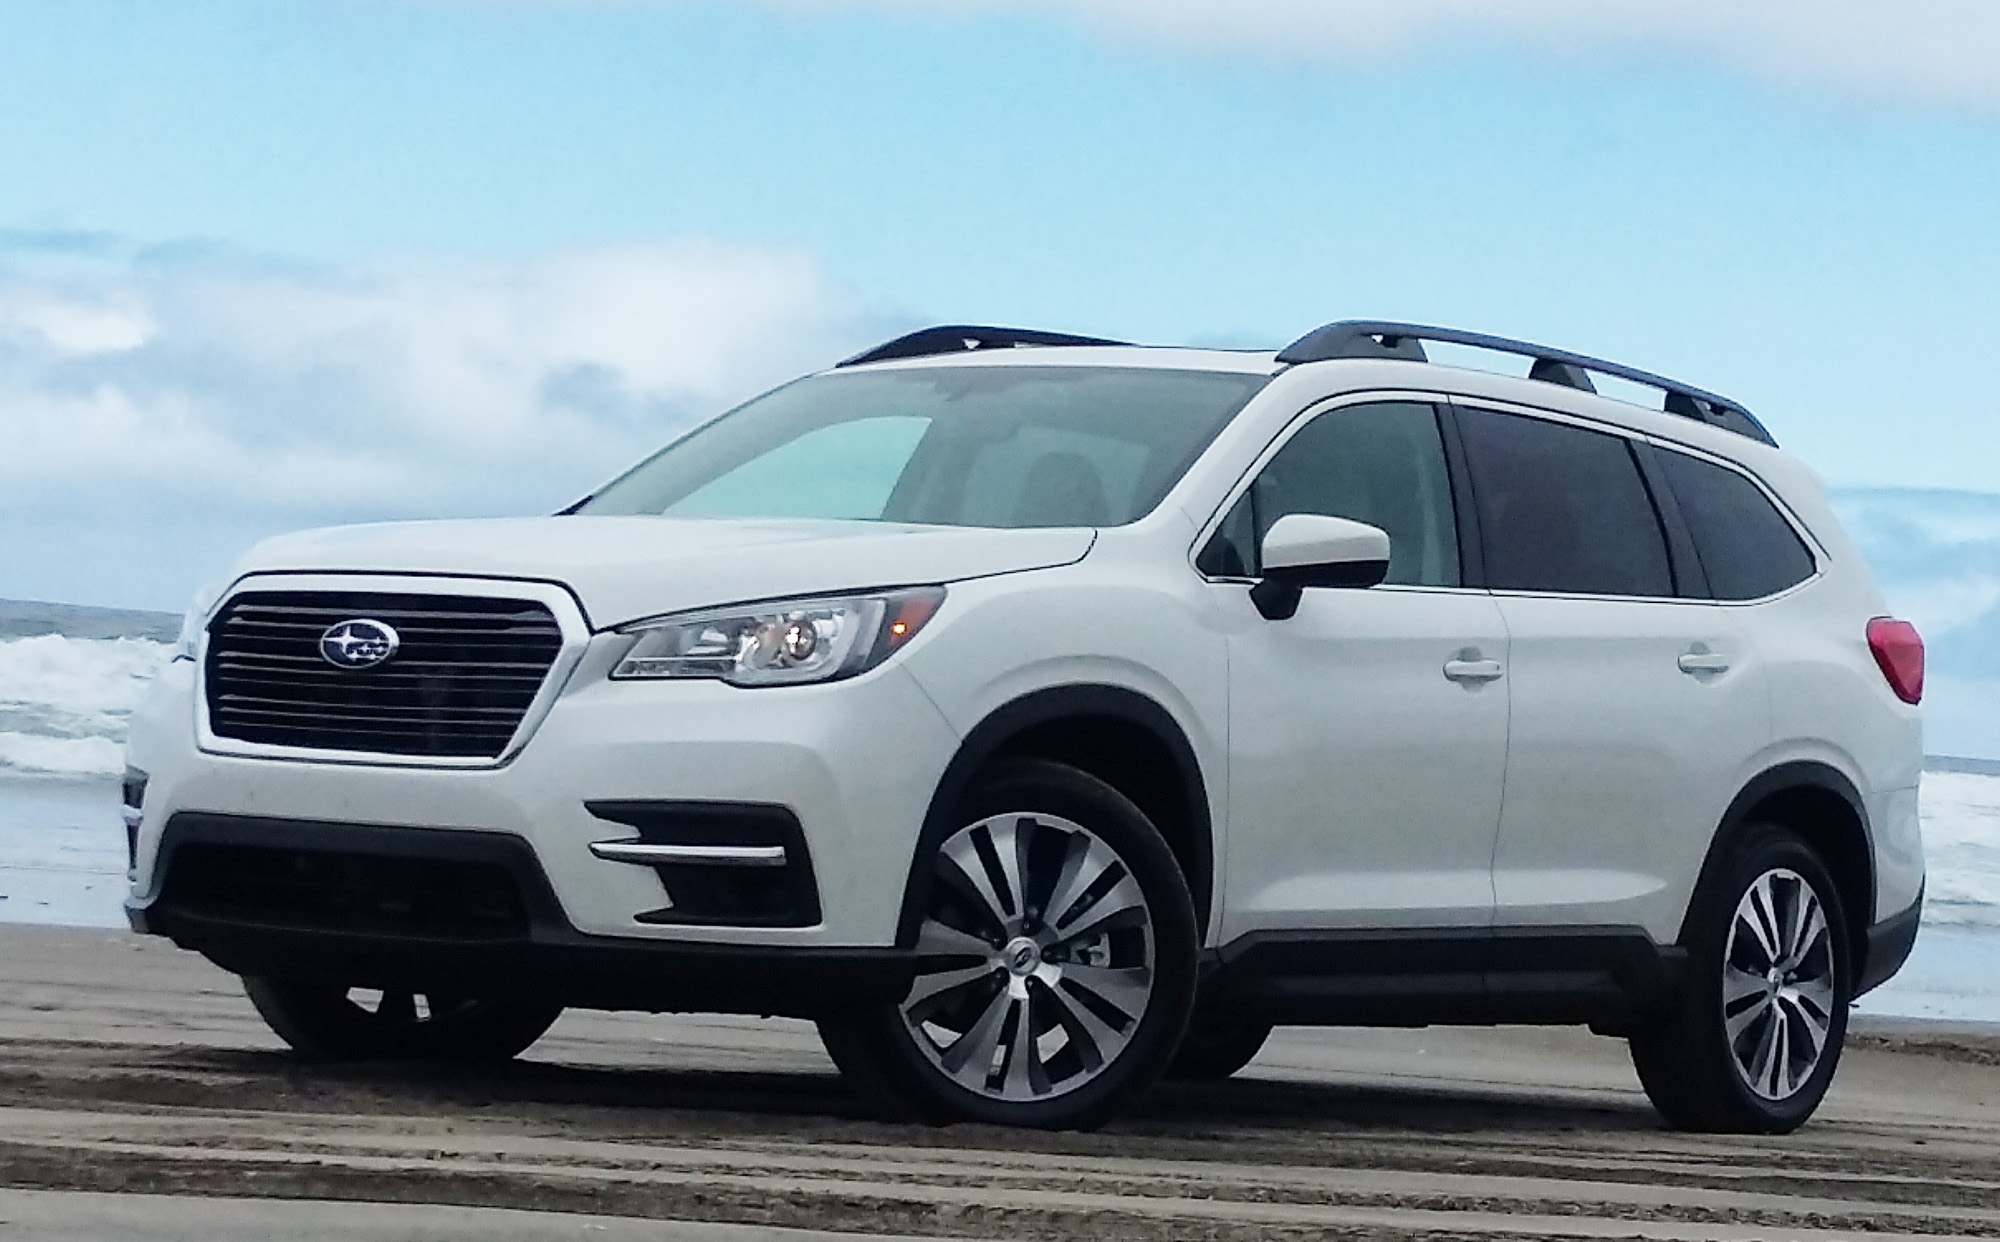 2019 subaru ascent the daily drive consumer guide rh blog consumerguide com Chuck How Stuff Works How Things Work